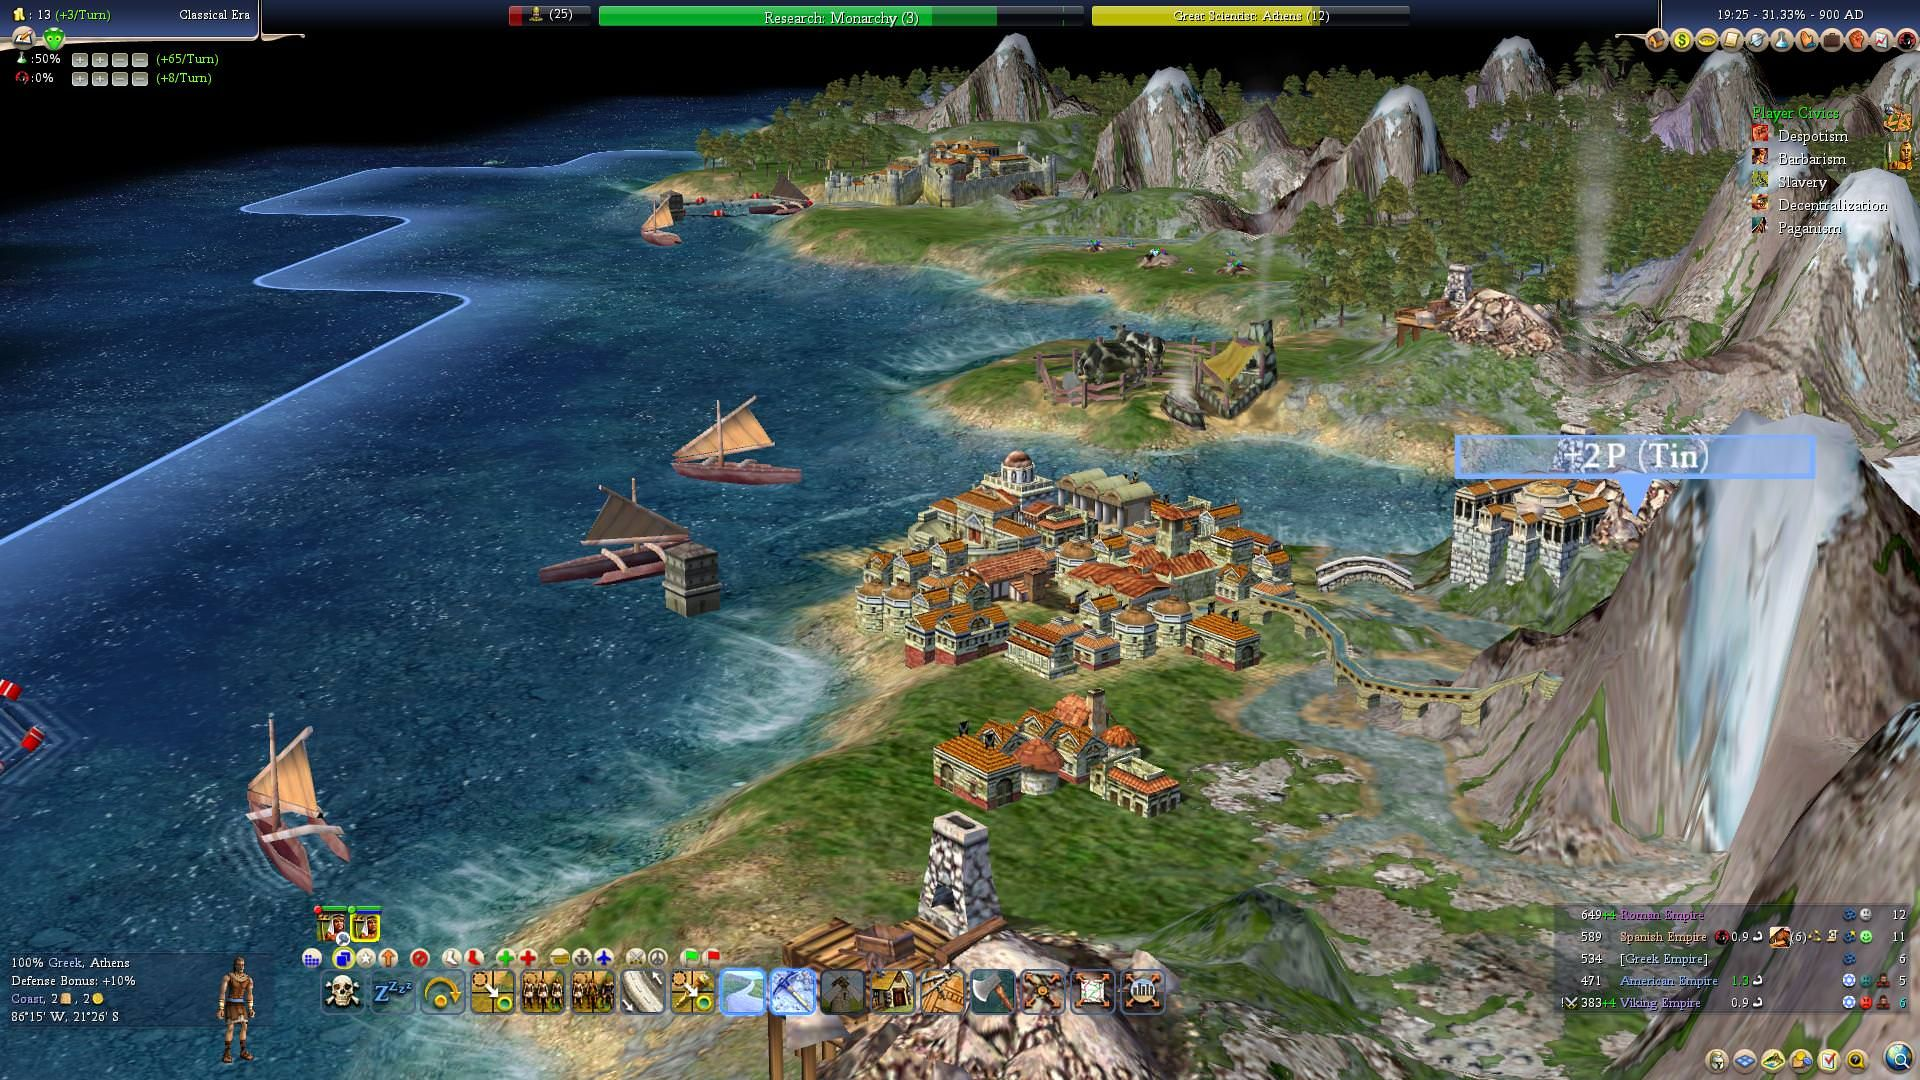 Civ 4 surely looks great with mods even today